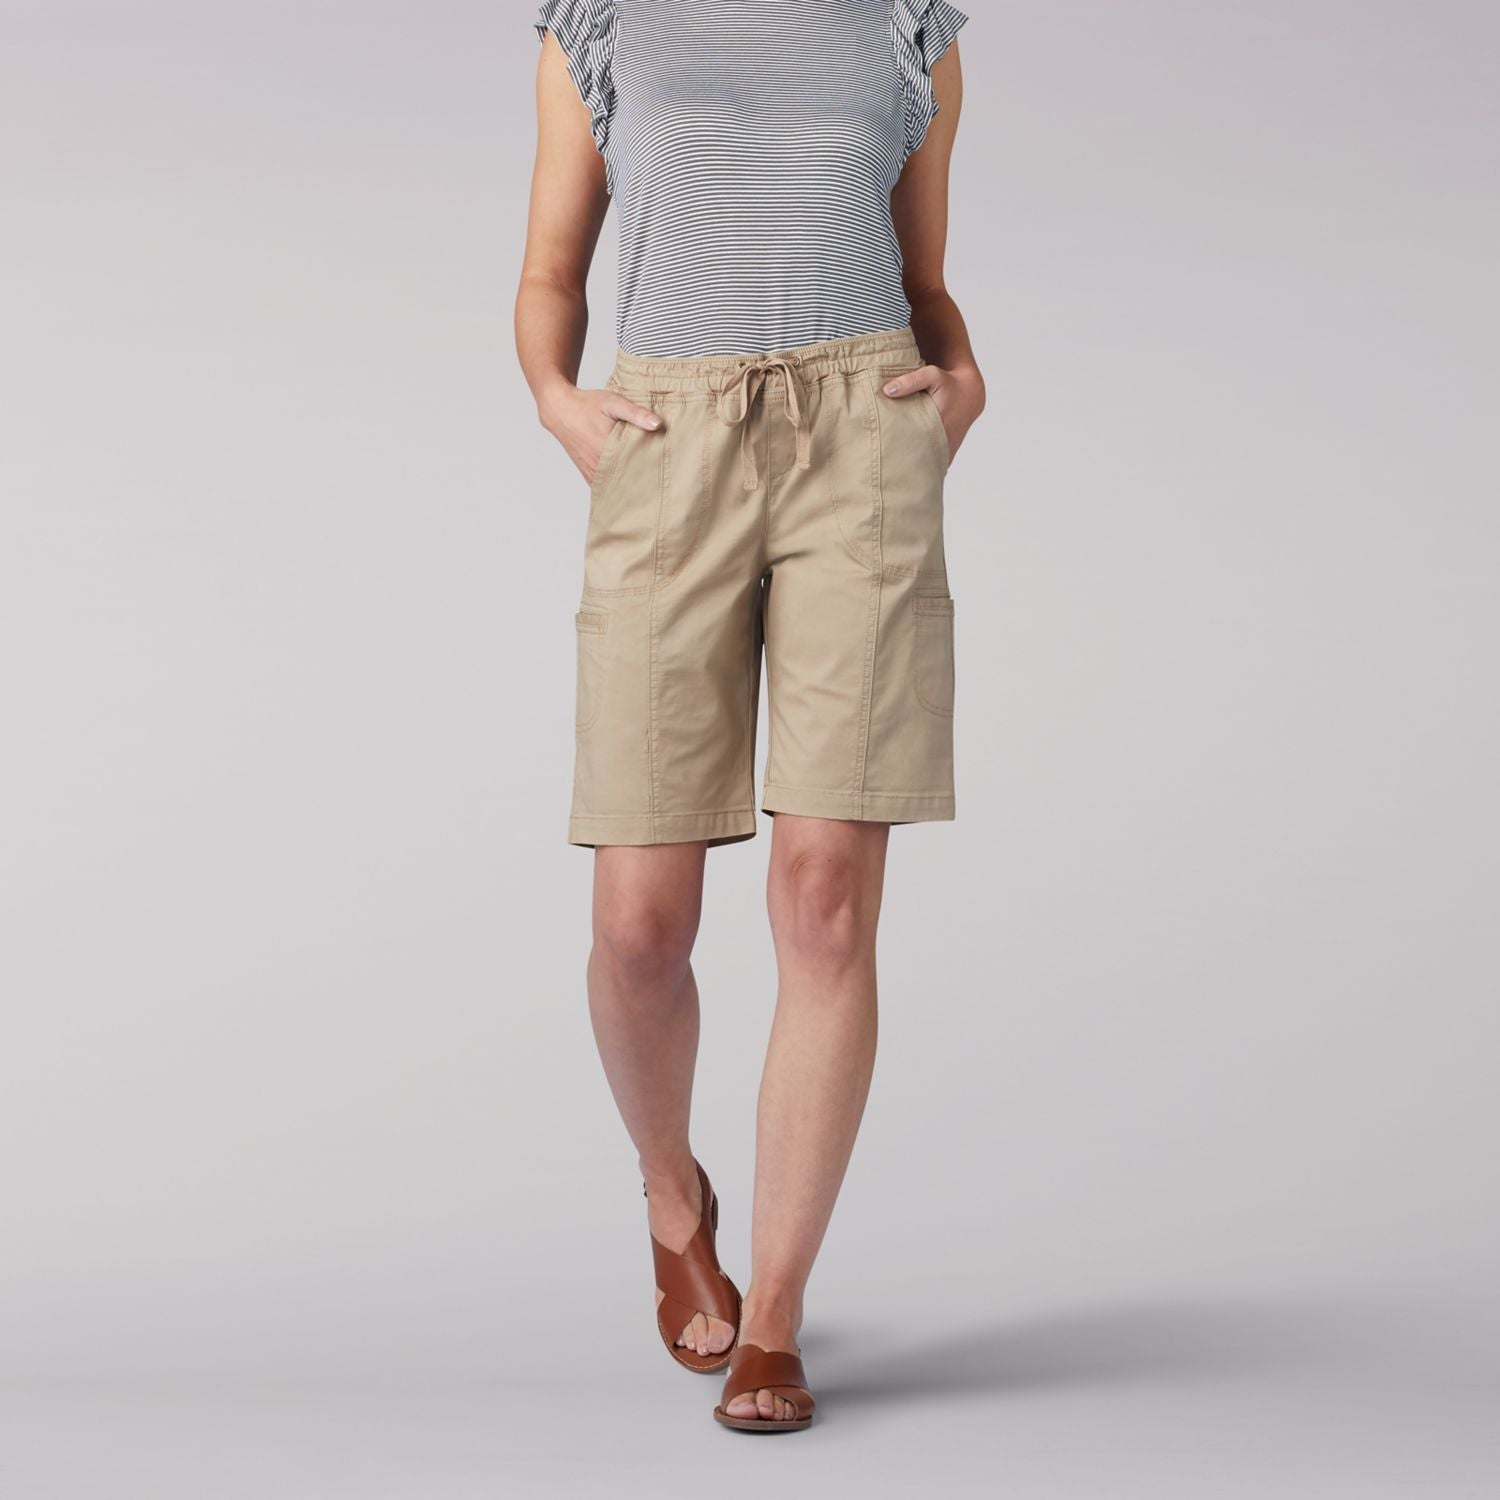 Flex-To-Go Relaxed Fit Pull On Cargo Bermuda Short in Tannin from Front View